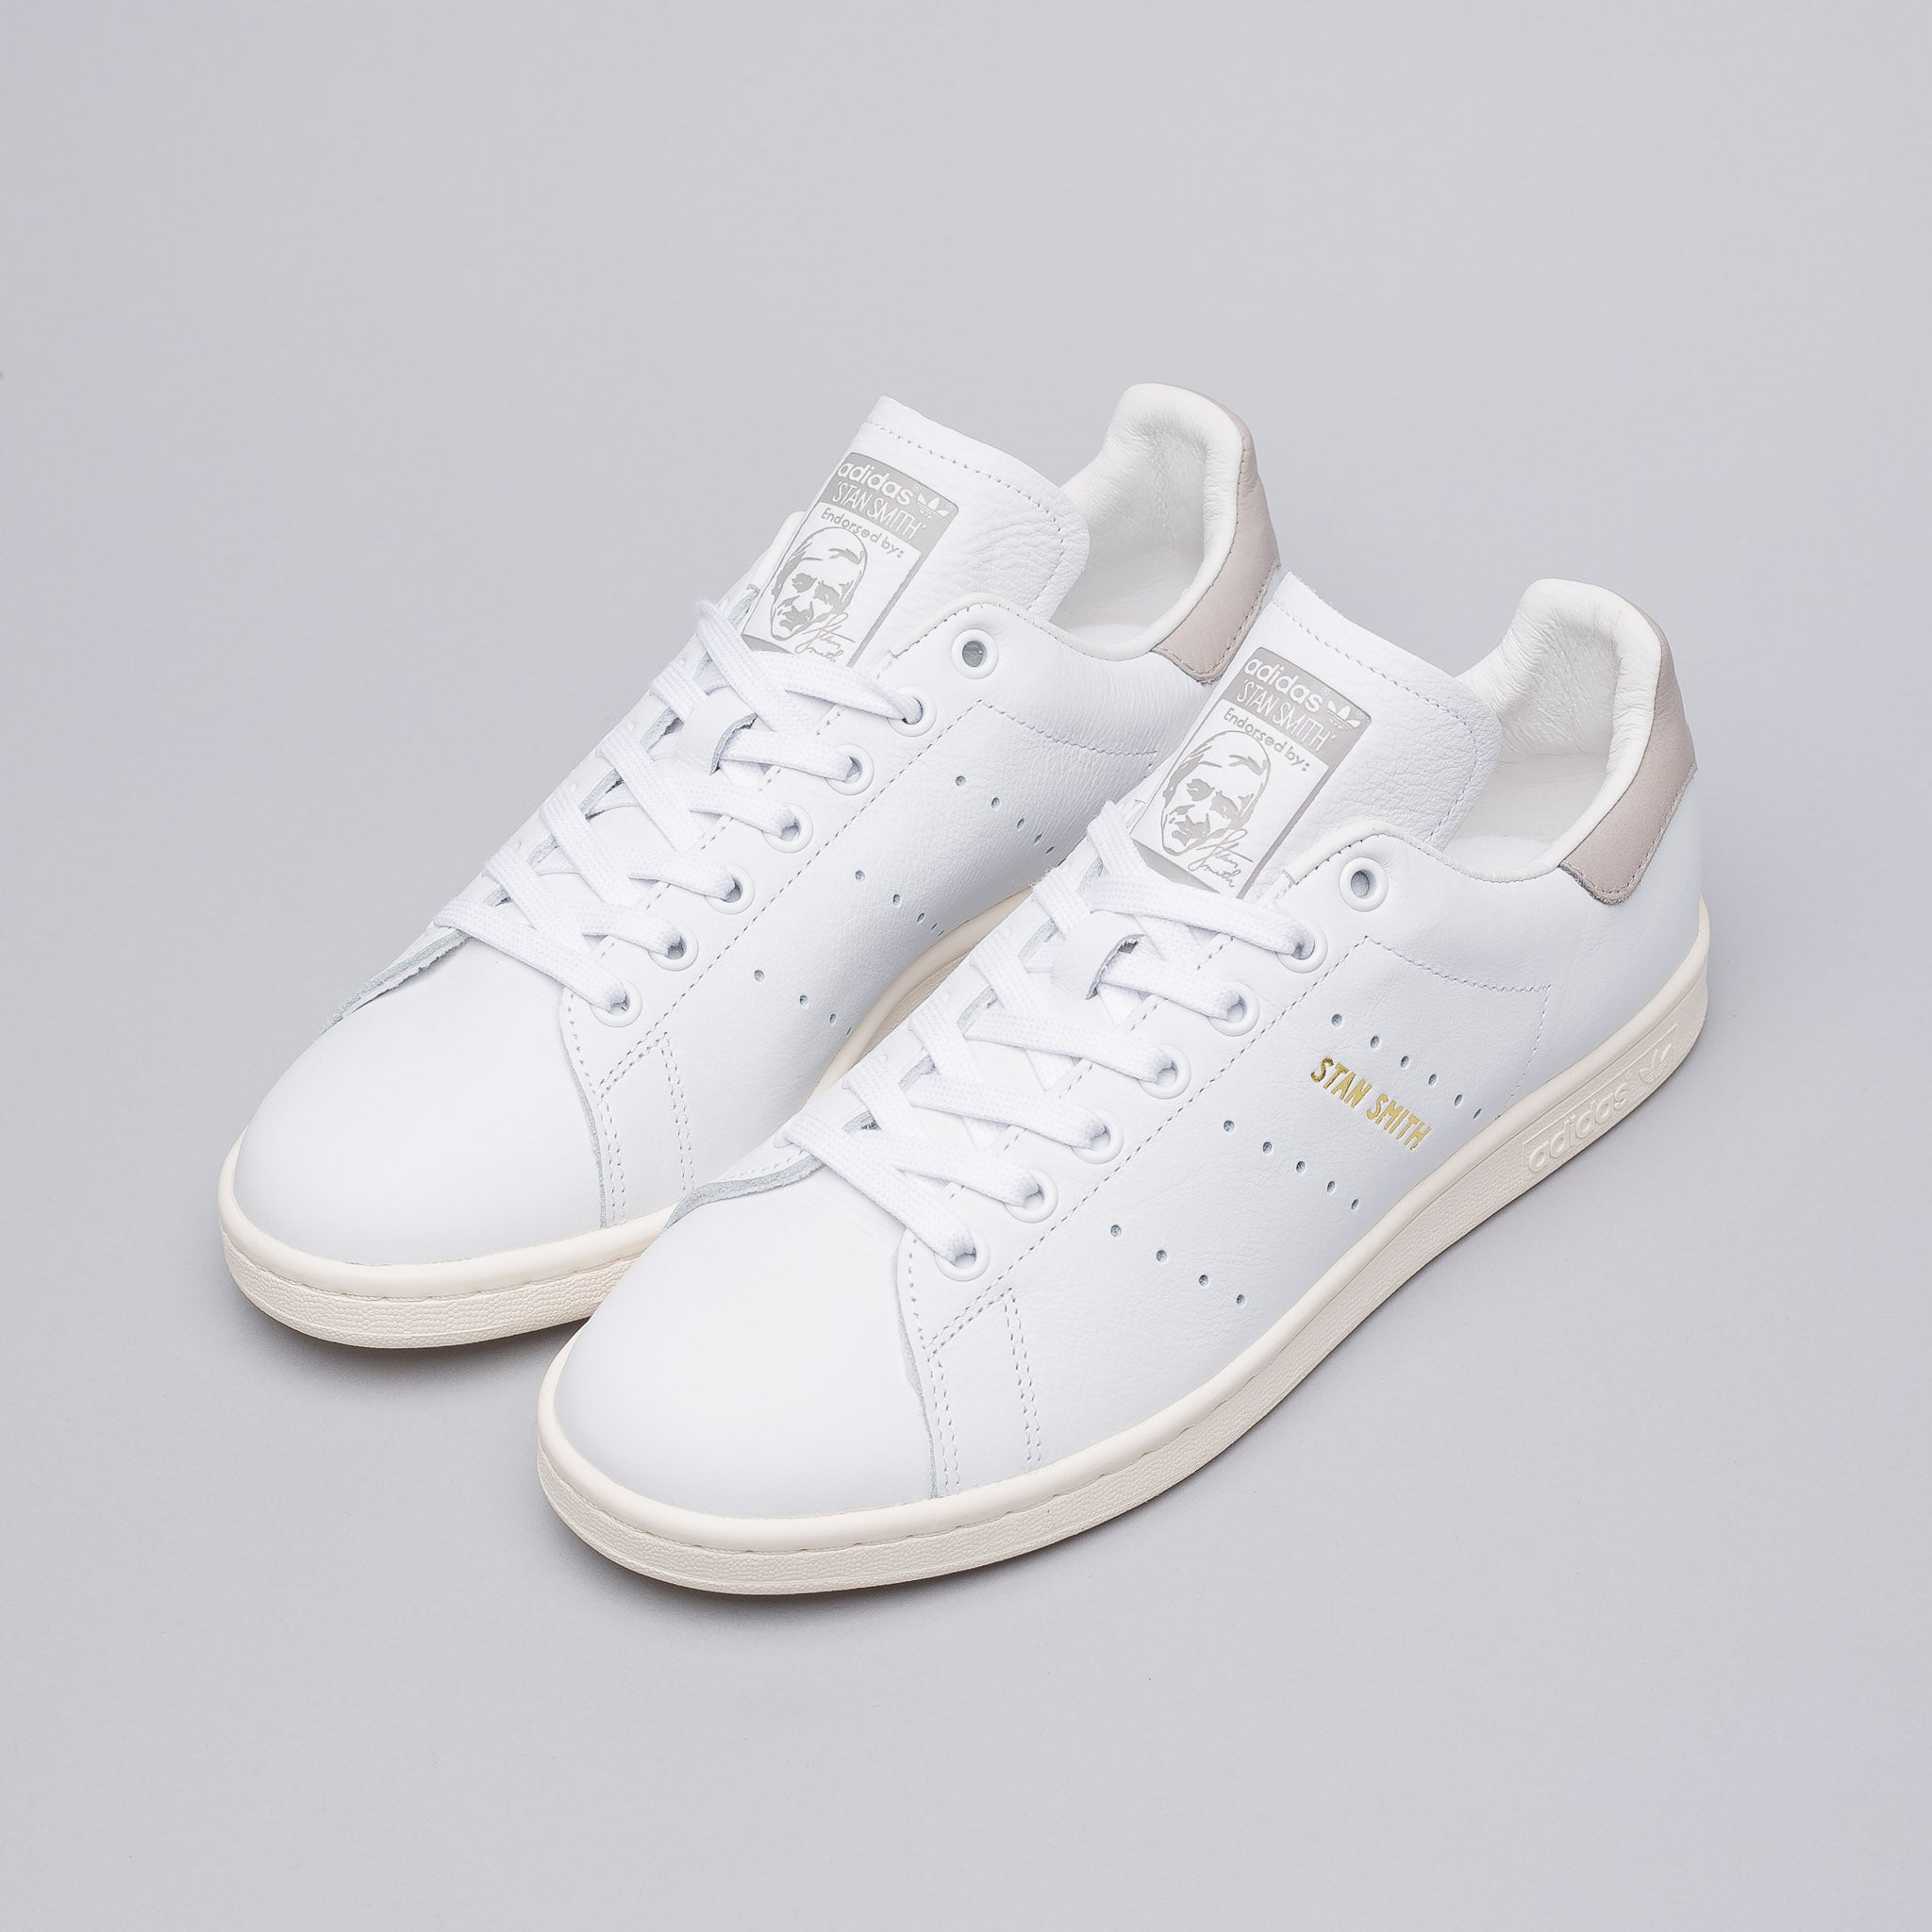 adidas nmd black and white clear blue adidas stan smith white black